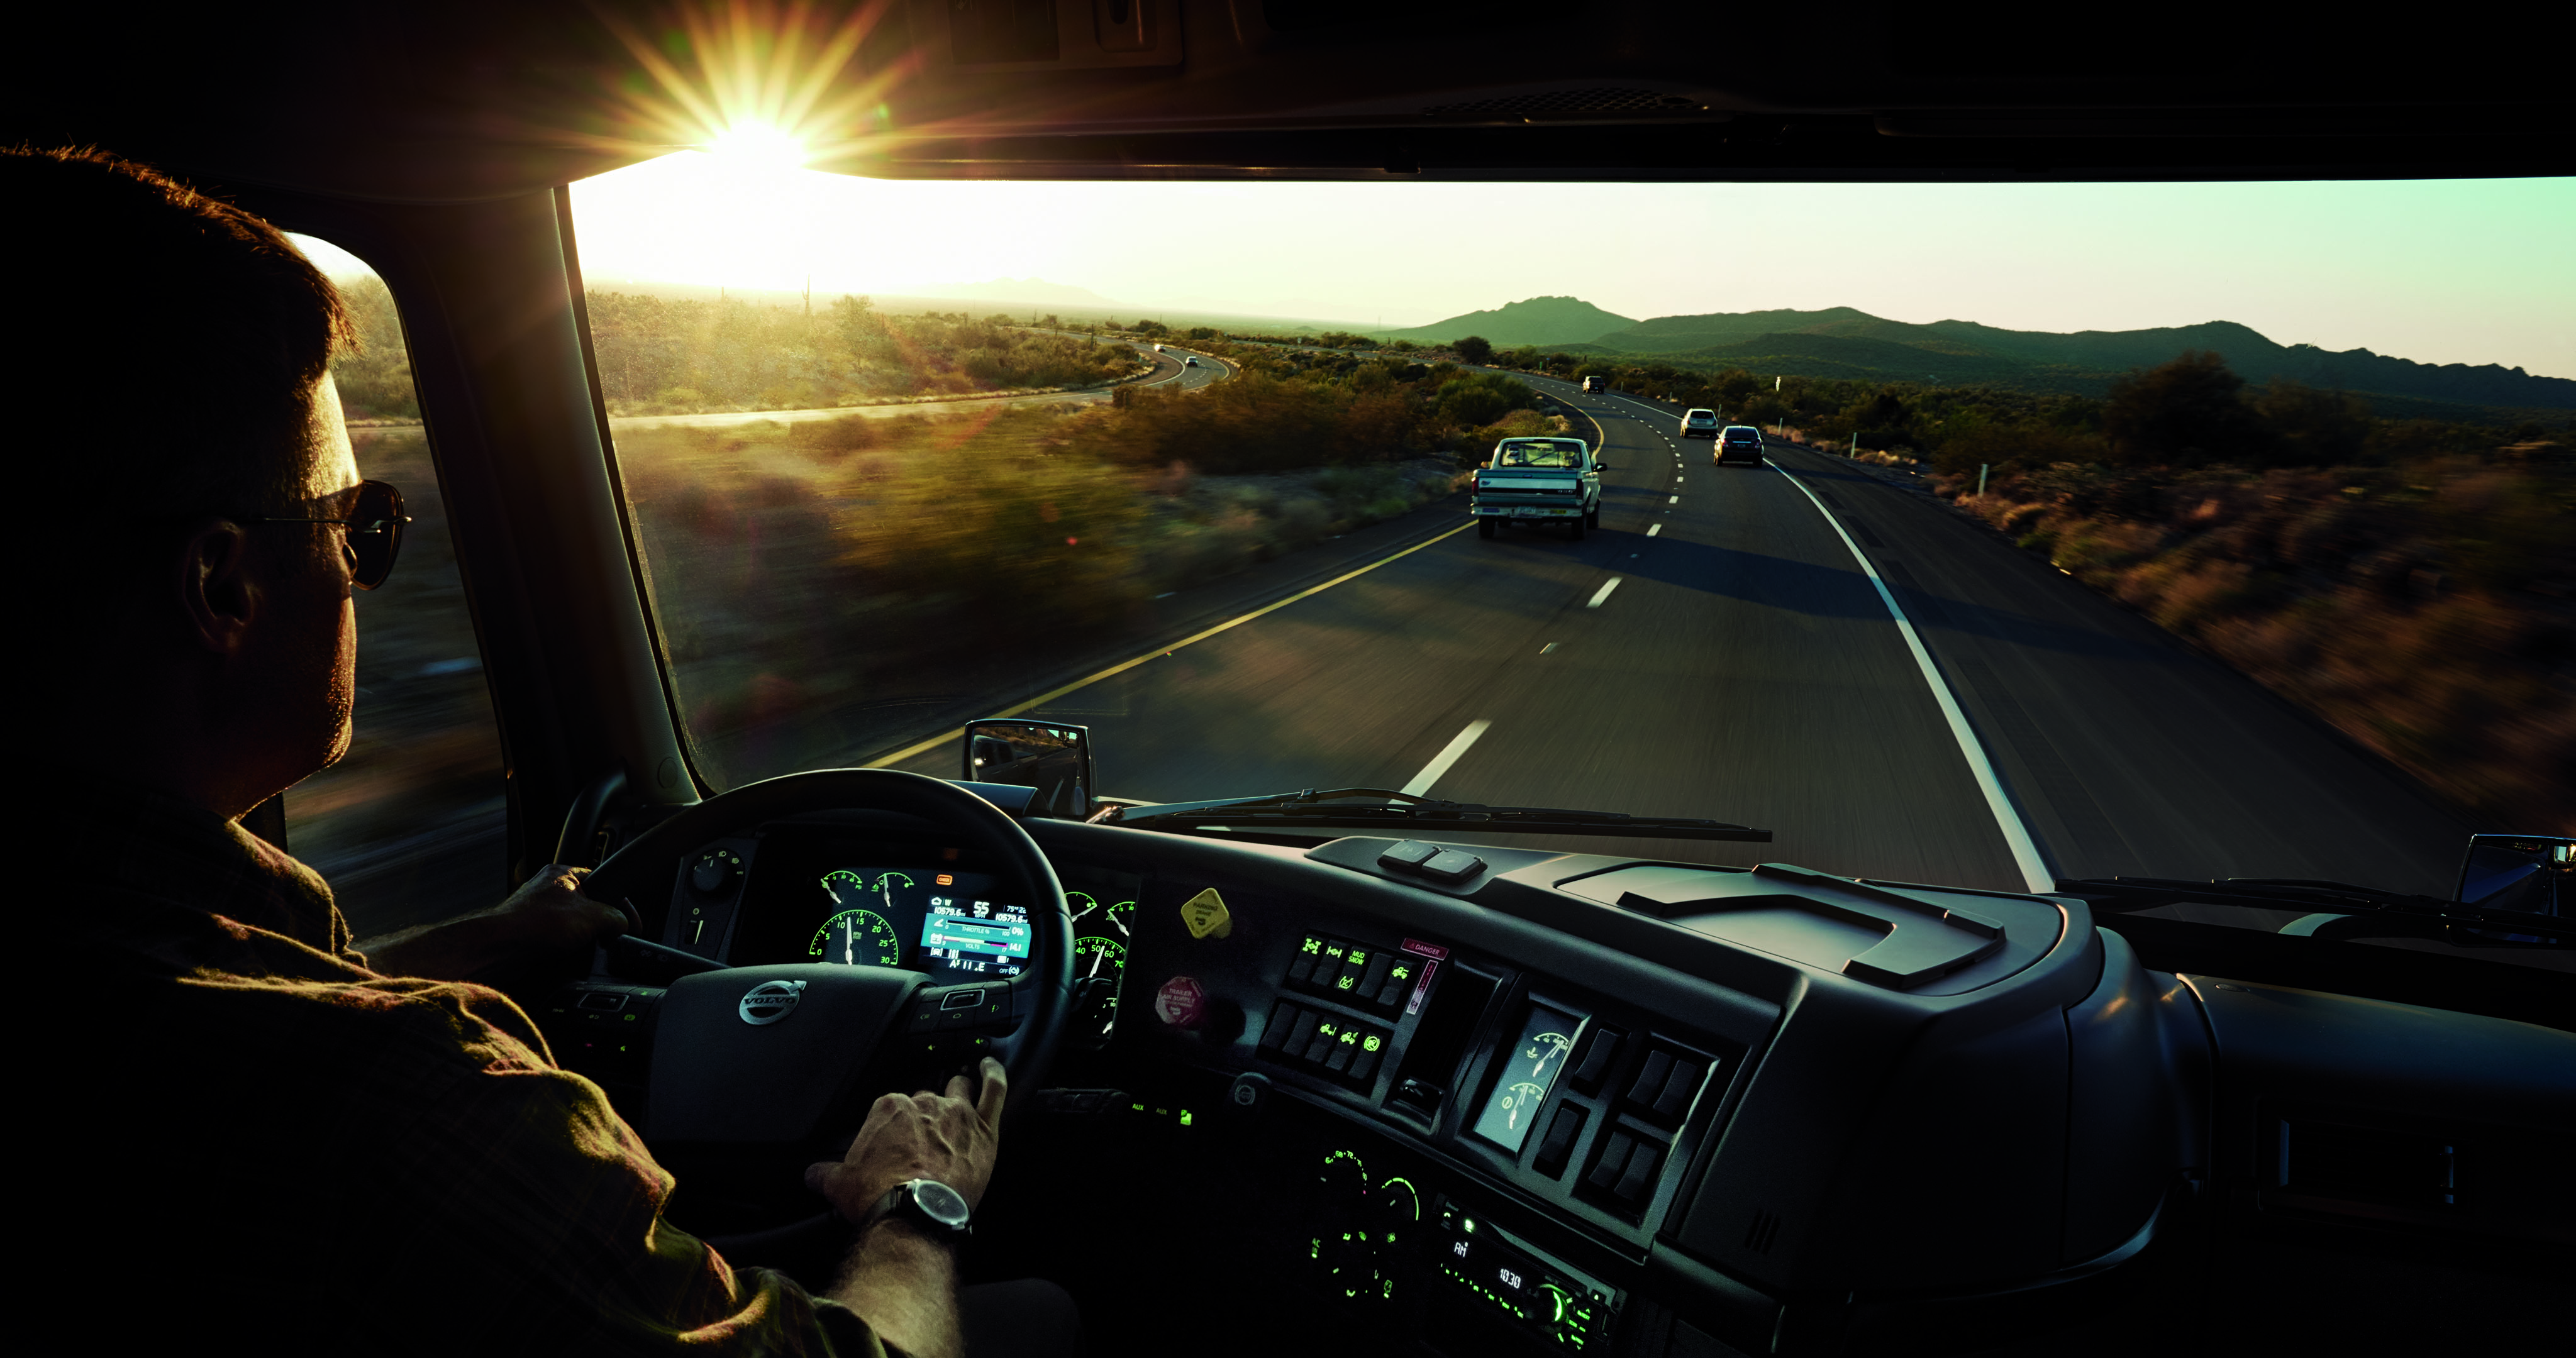 driving a Volvo truck